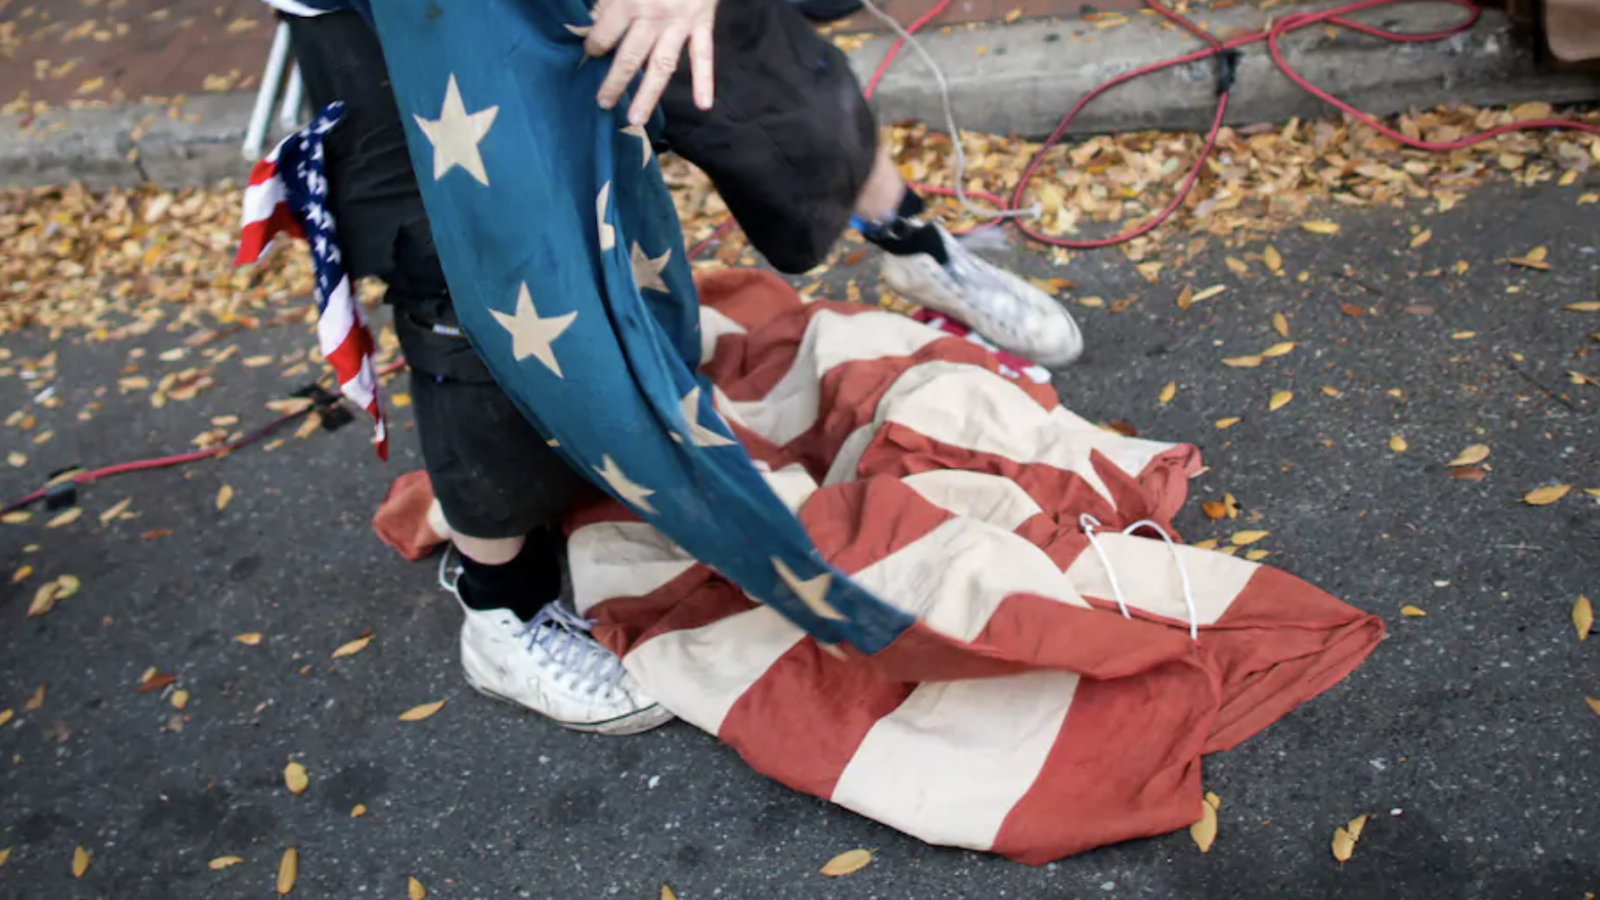 A hand unfurls an American flag from the ground.